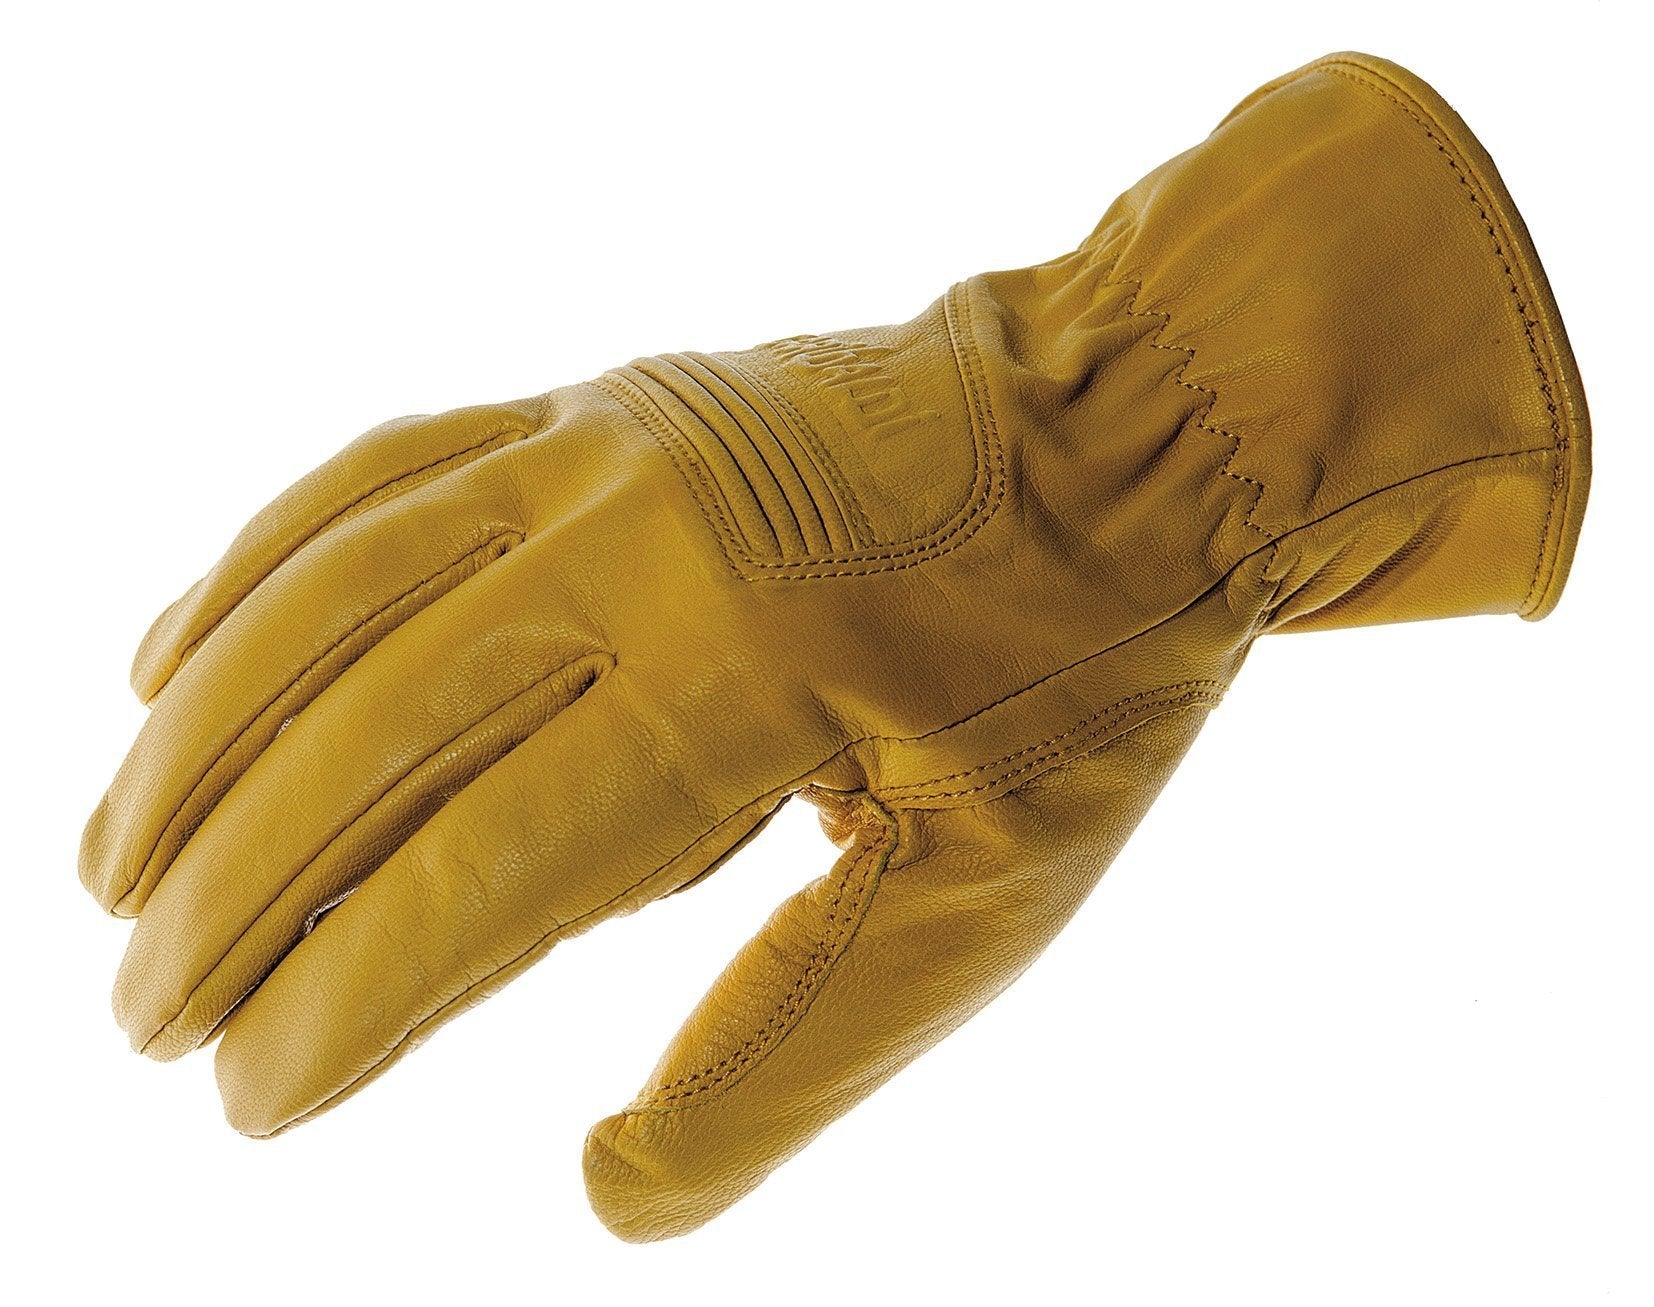 Garibaldi - Garibaldi Civic Mens Vintage Summer Urban Touring Gloves - Gloves - Salt Flats Clothing